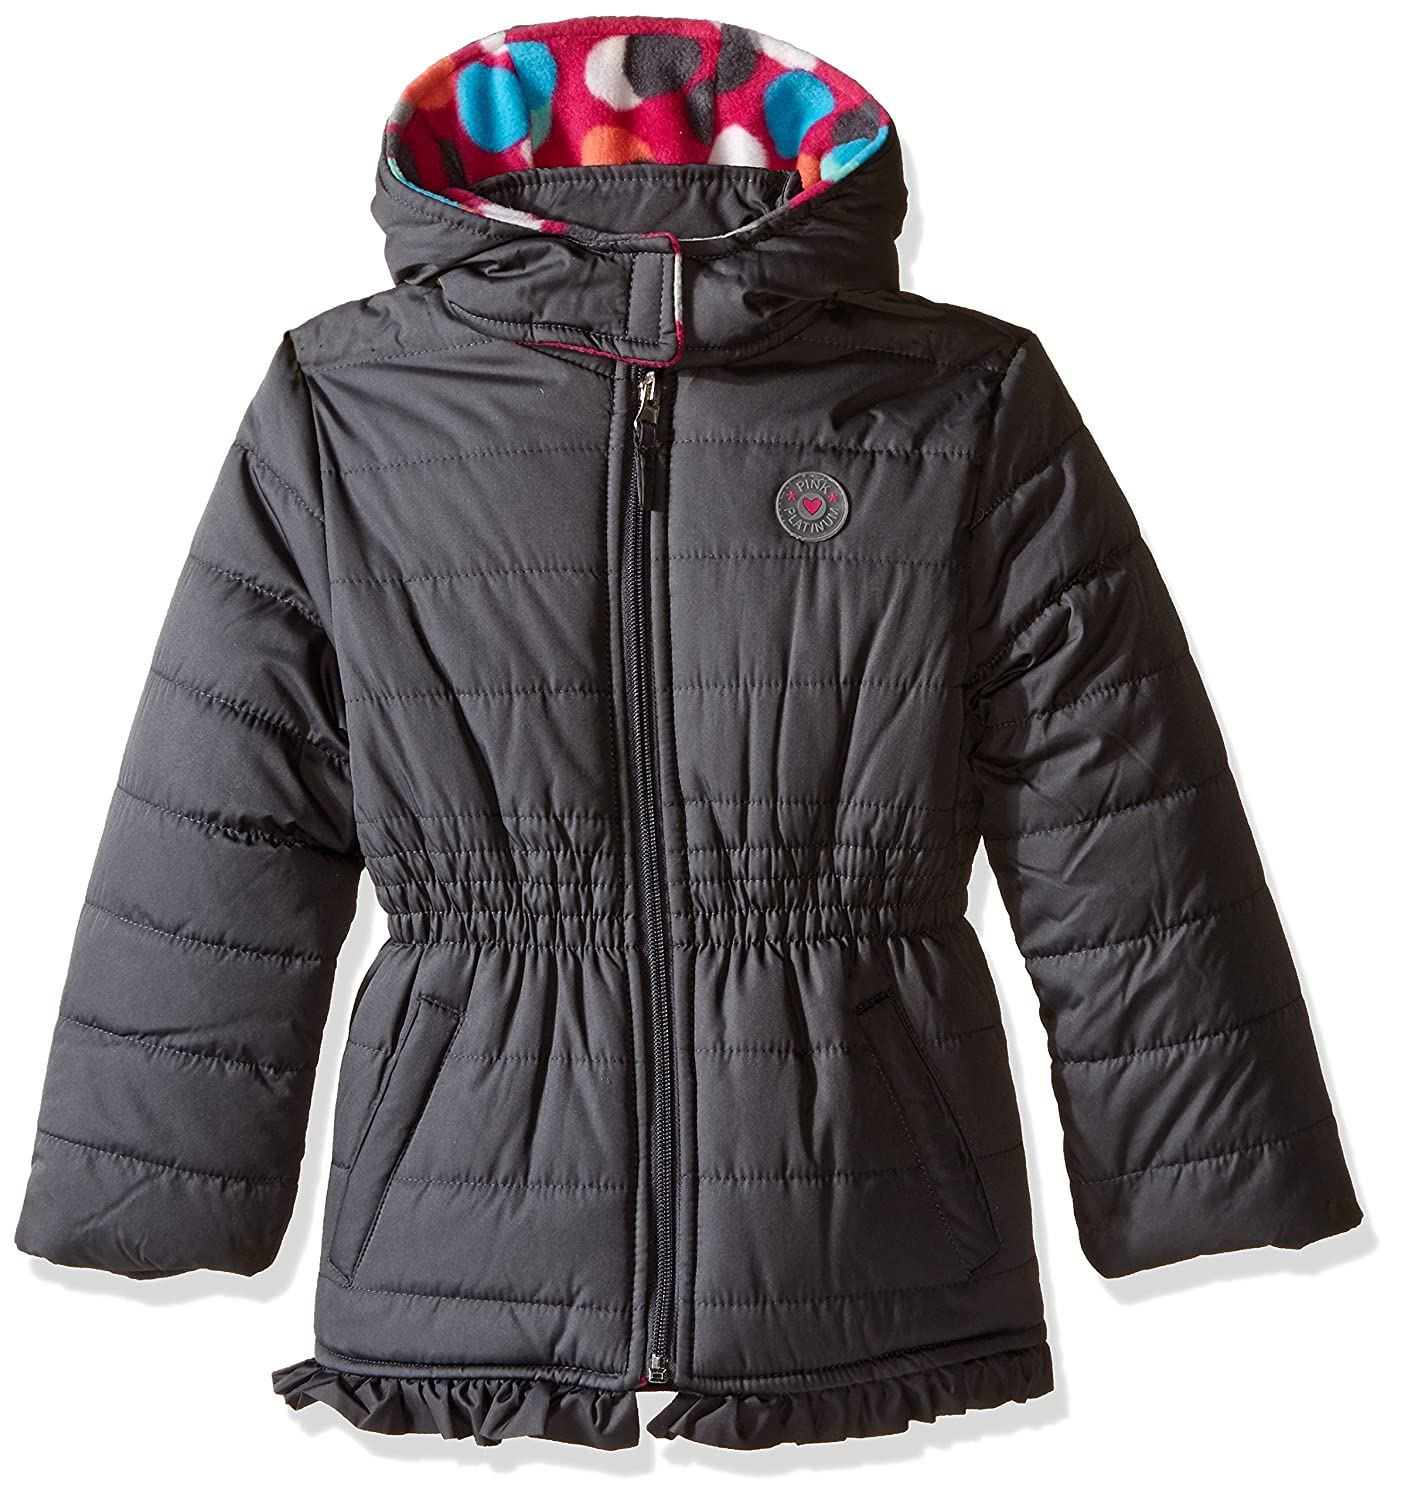 Pink Platinum girls Puffer Jacket With Big Dots Print Lining Charcoal 2T PP774310-CCL